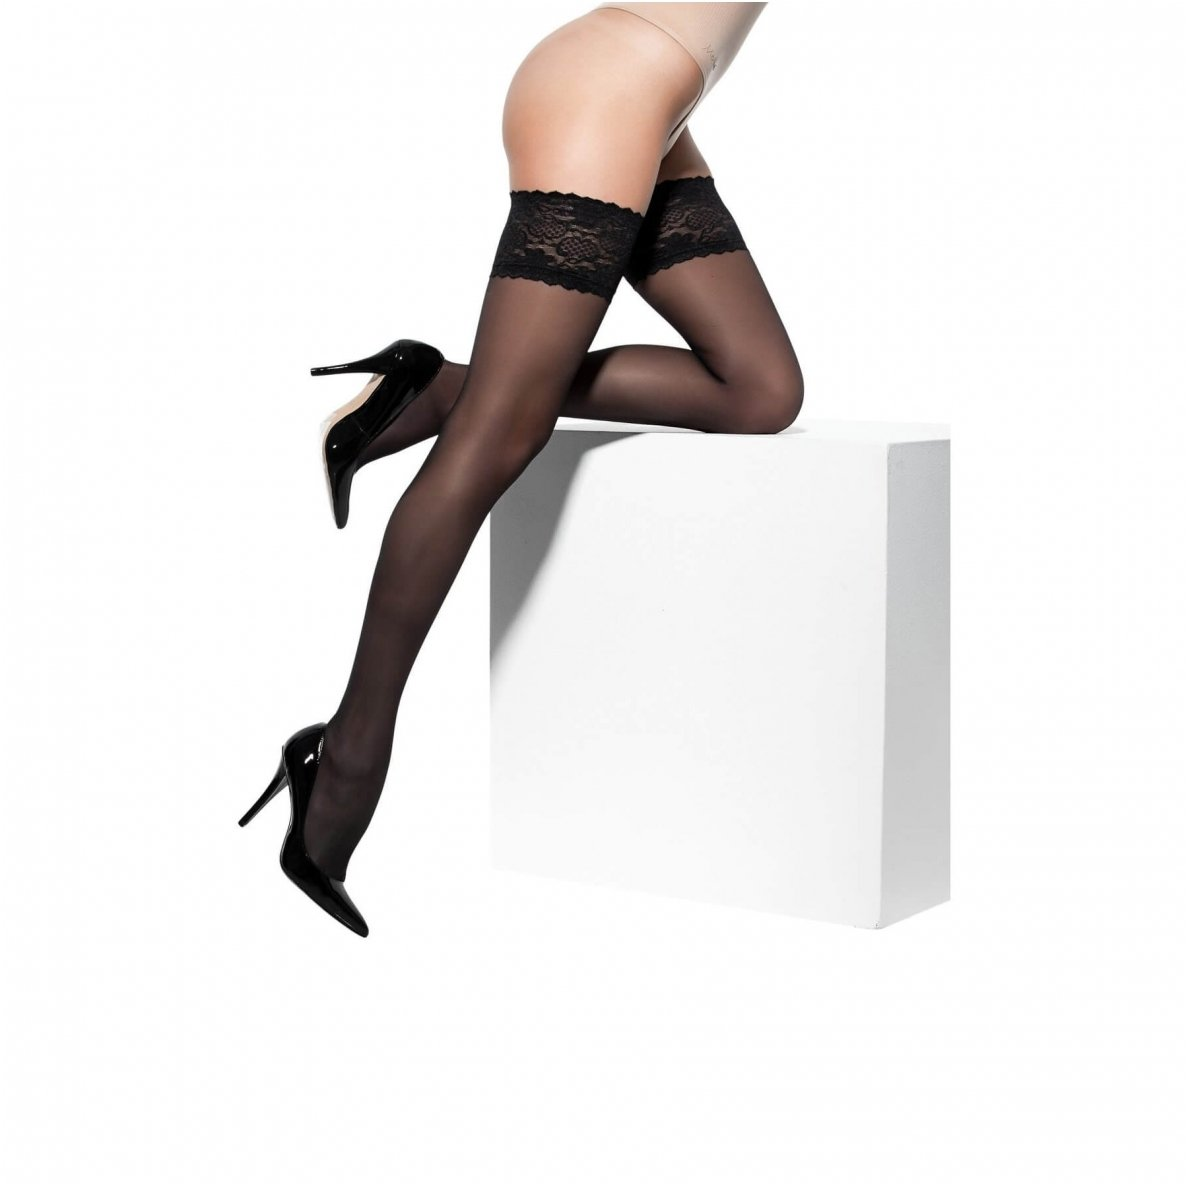 07a0a8bd23 SOLIDEA Marilyn 70 Sheer compression hold-up stockings | SILUETA.lt